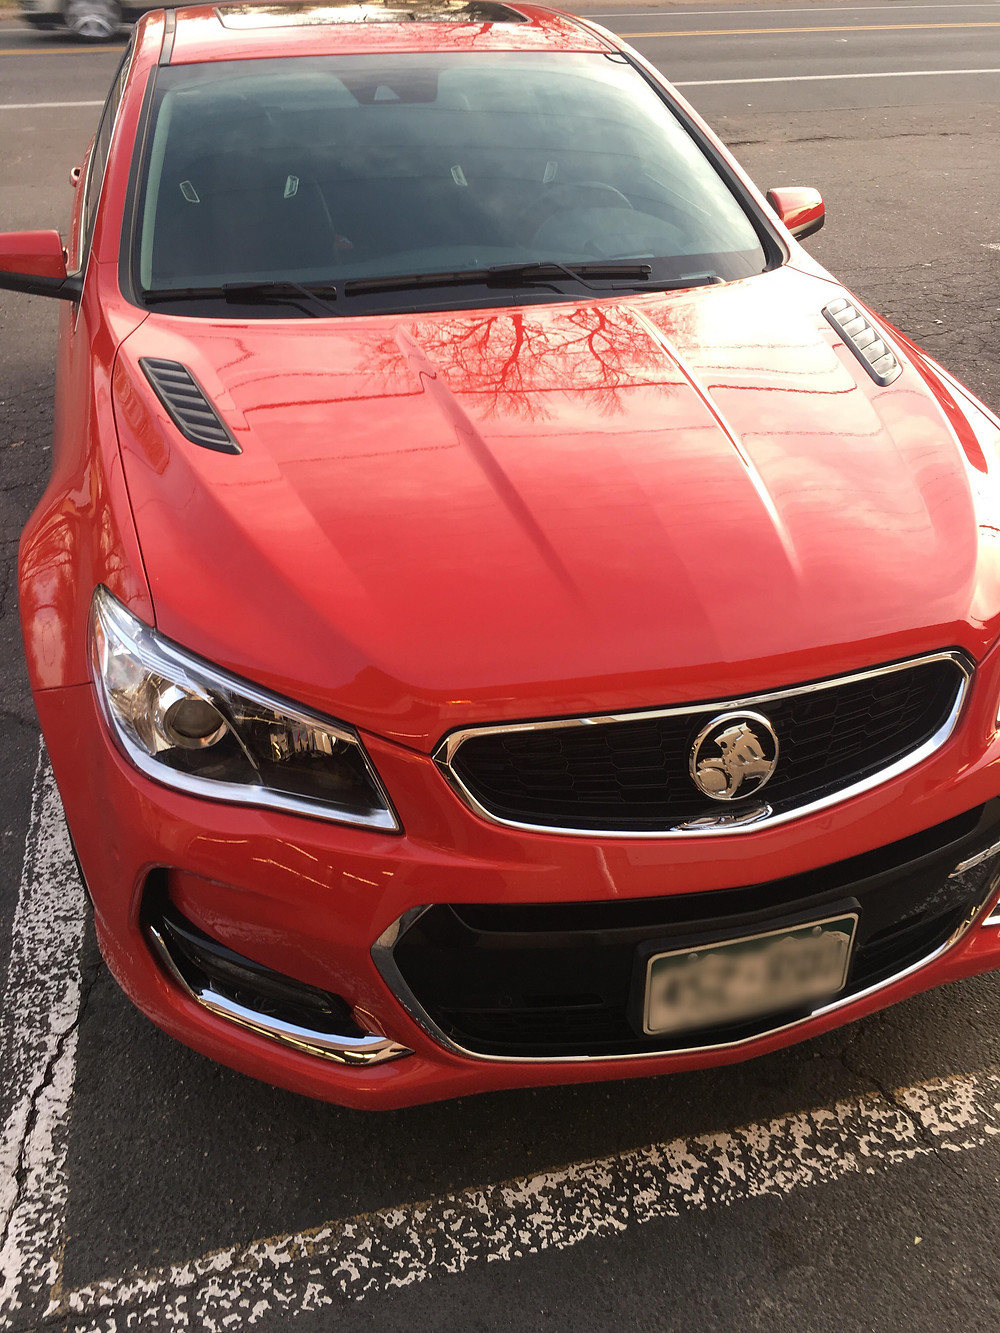 Chevy SS, Holden Commodore, Commodore VF, LS3, Carz Performance